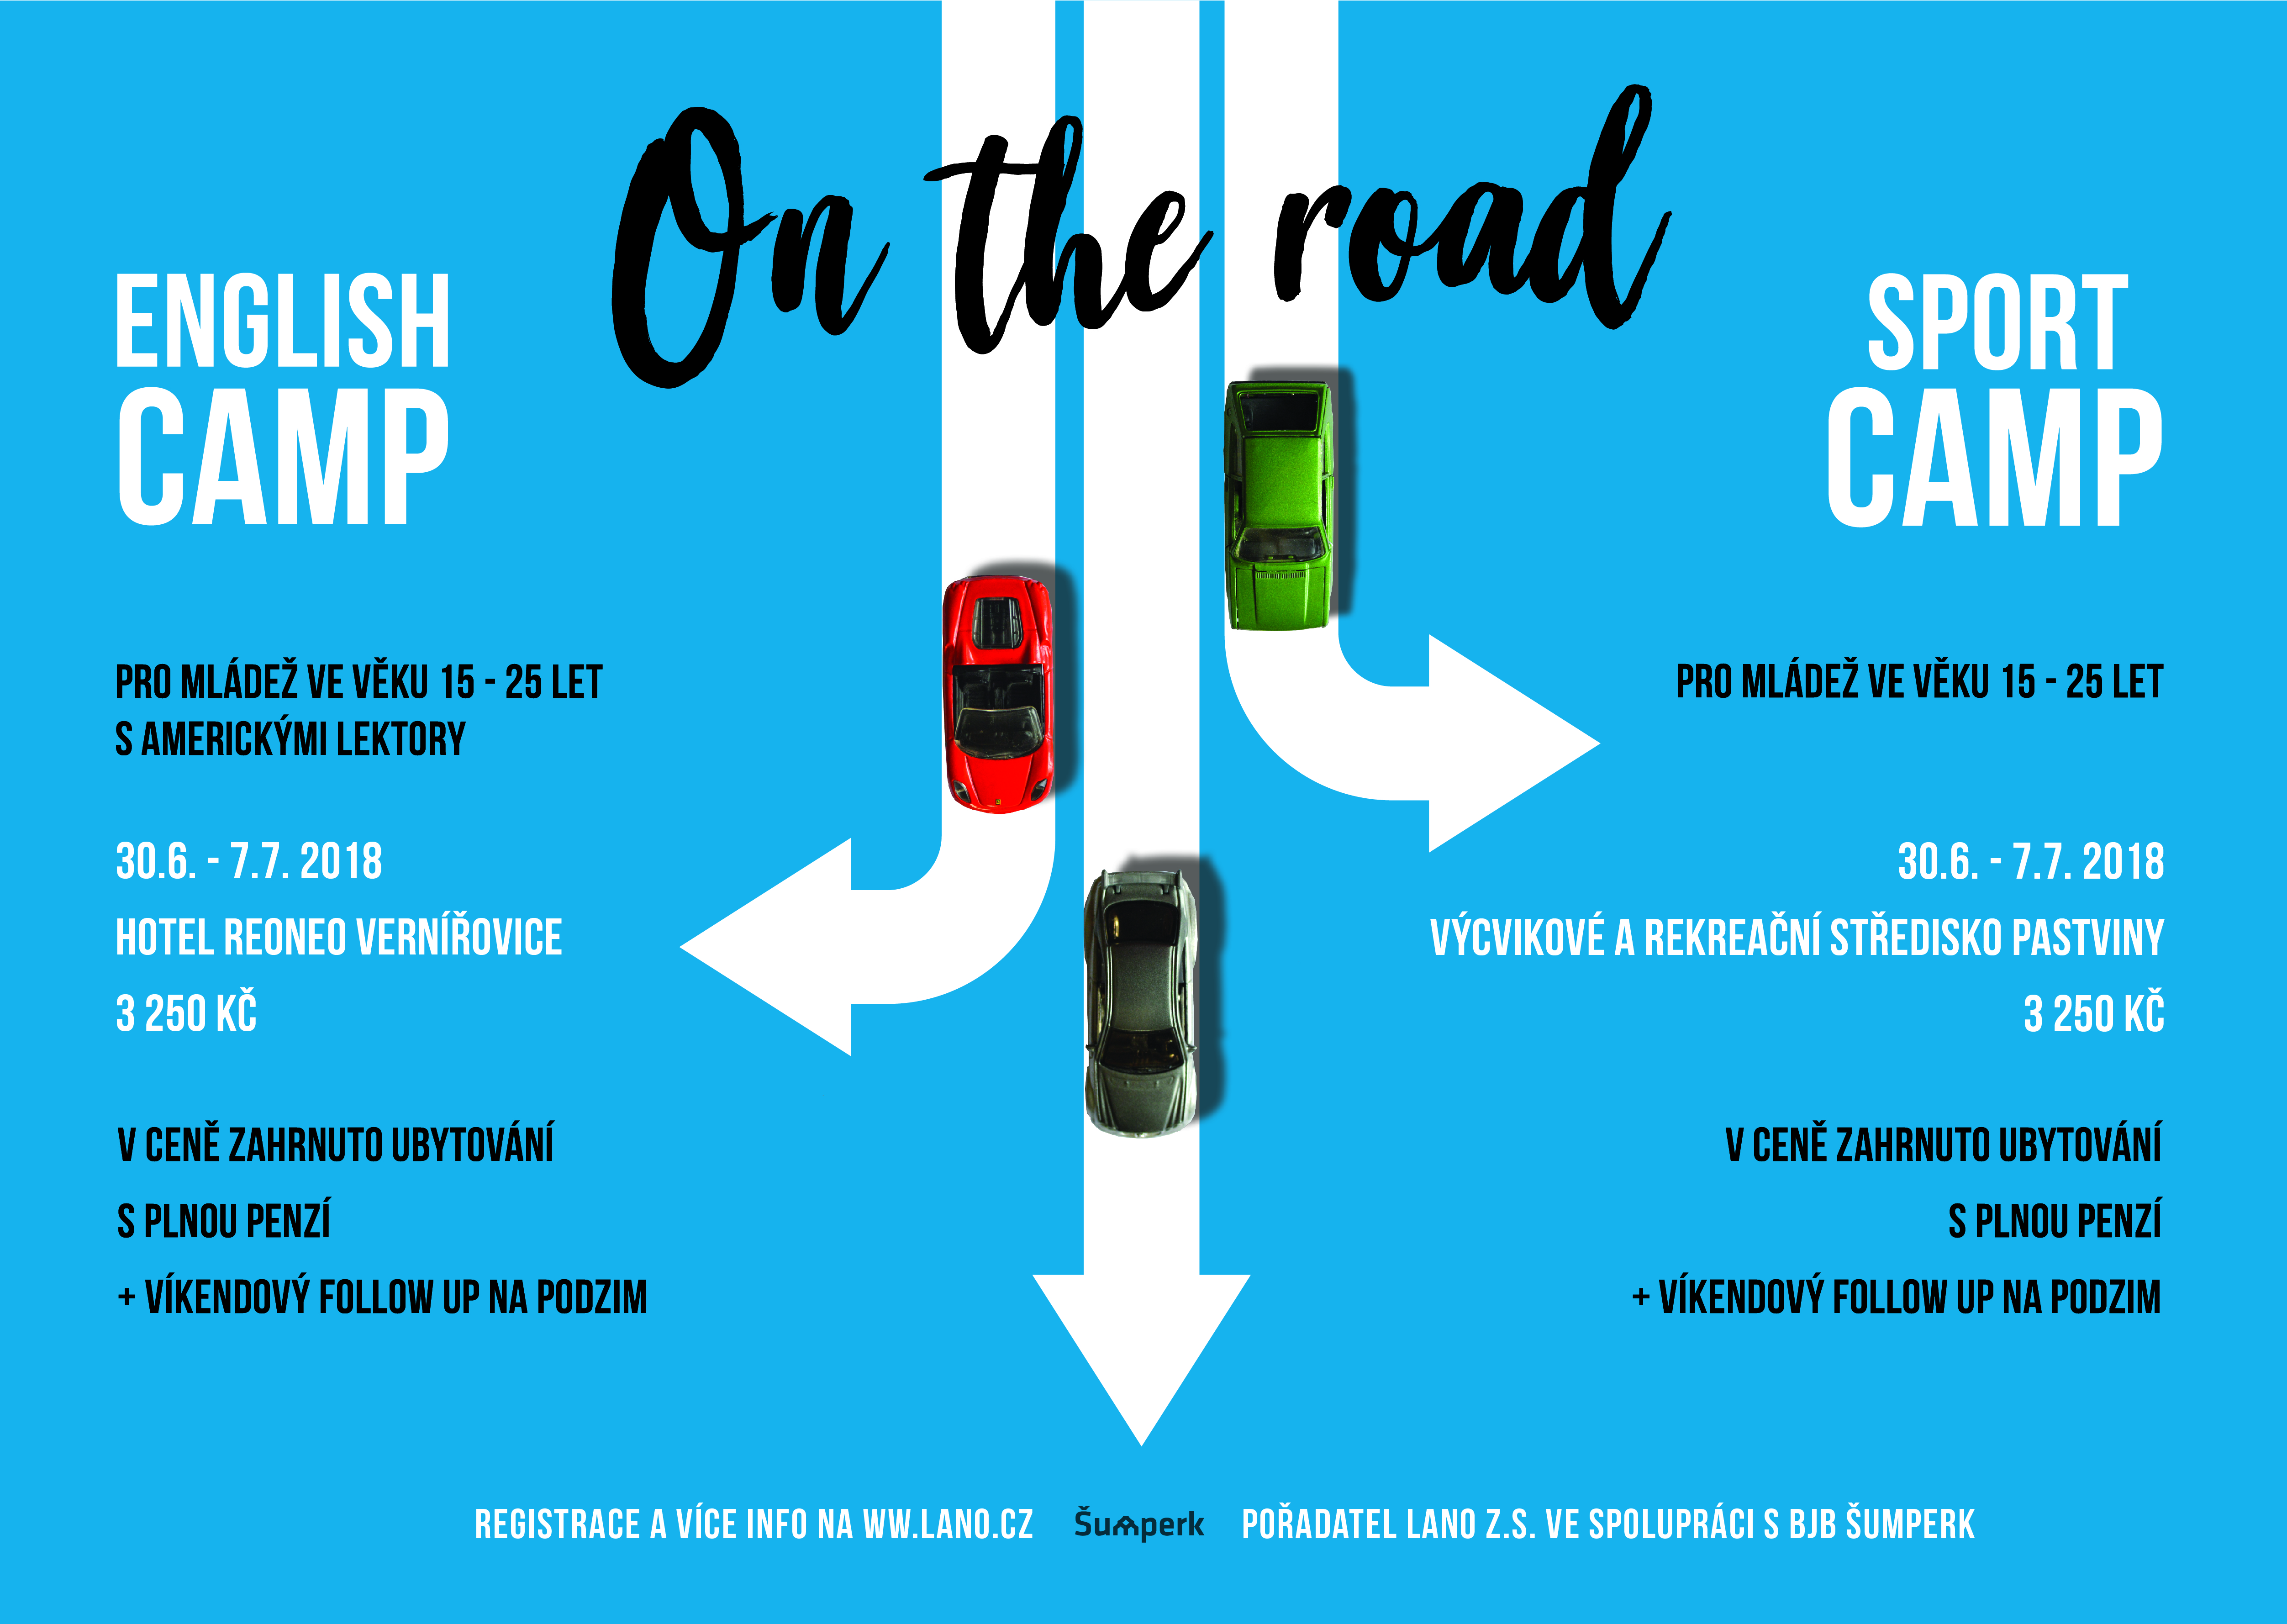 English camp 2018 a Sport camp 2018 – On The Road!